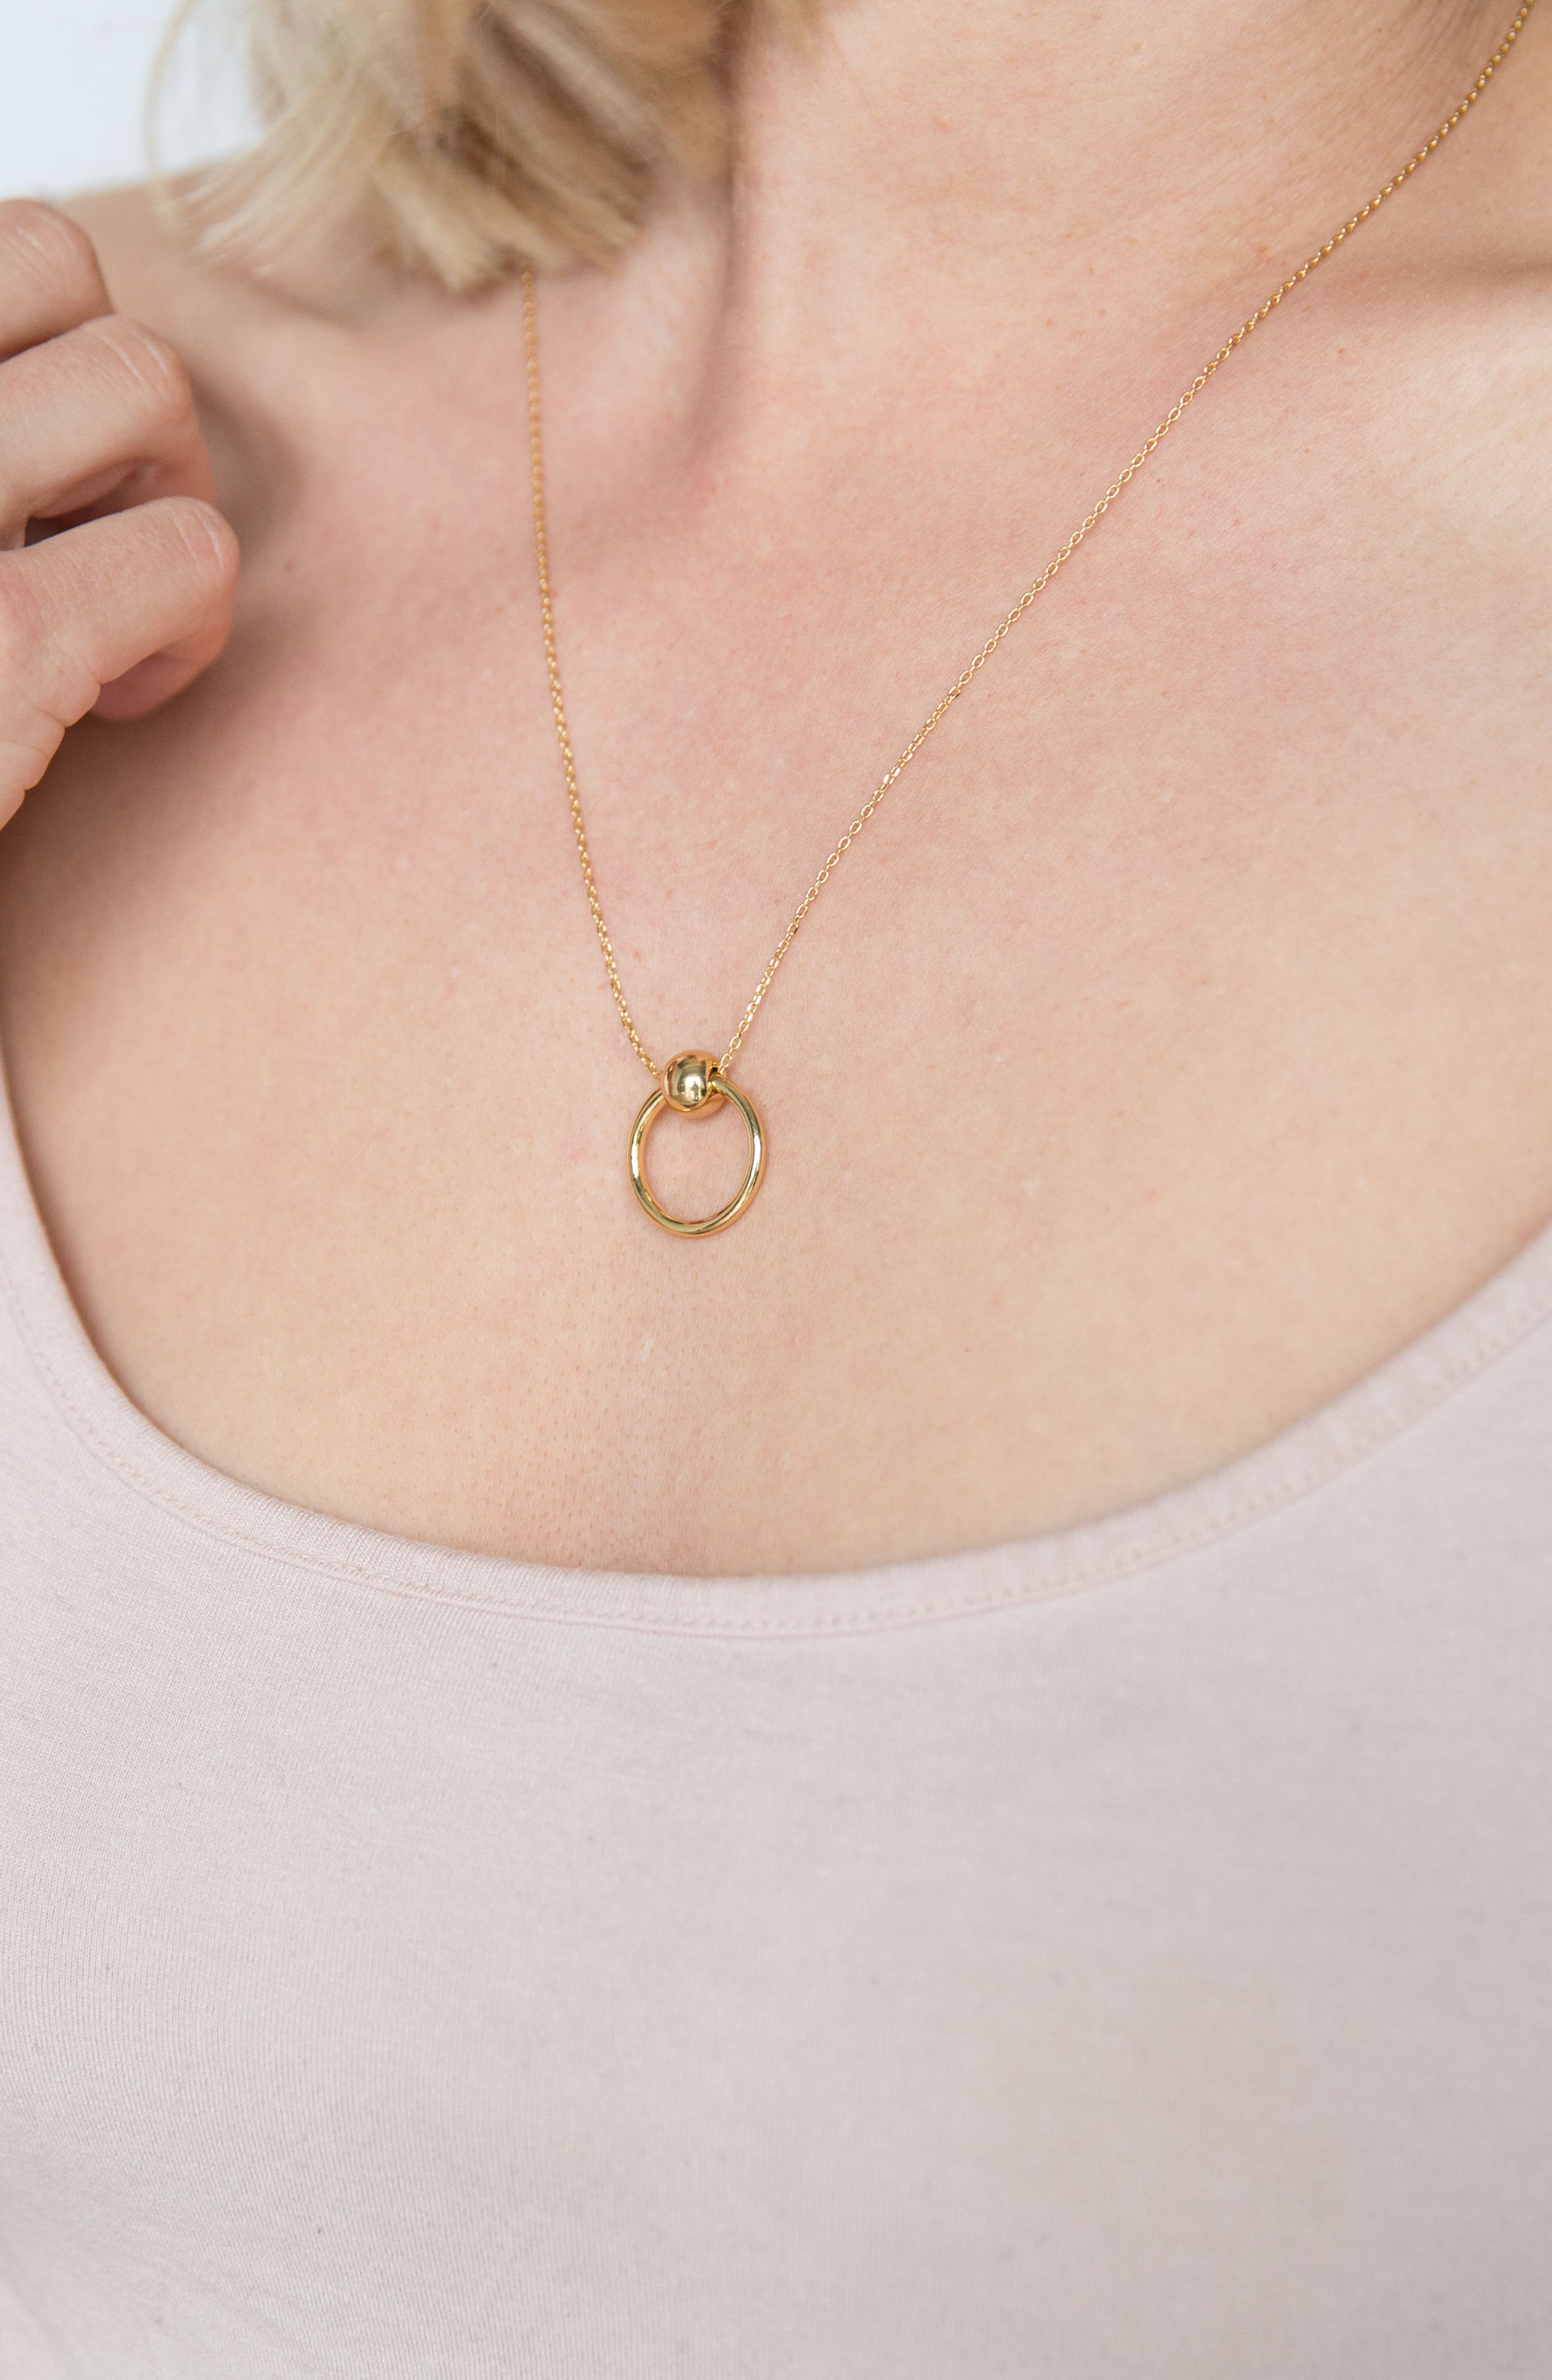 Helix Necklace,                             Alternate thumbnail 3, color,                             Gold